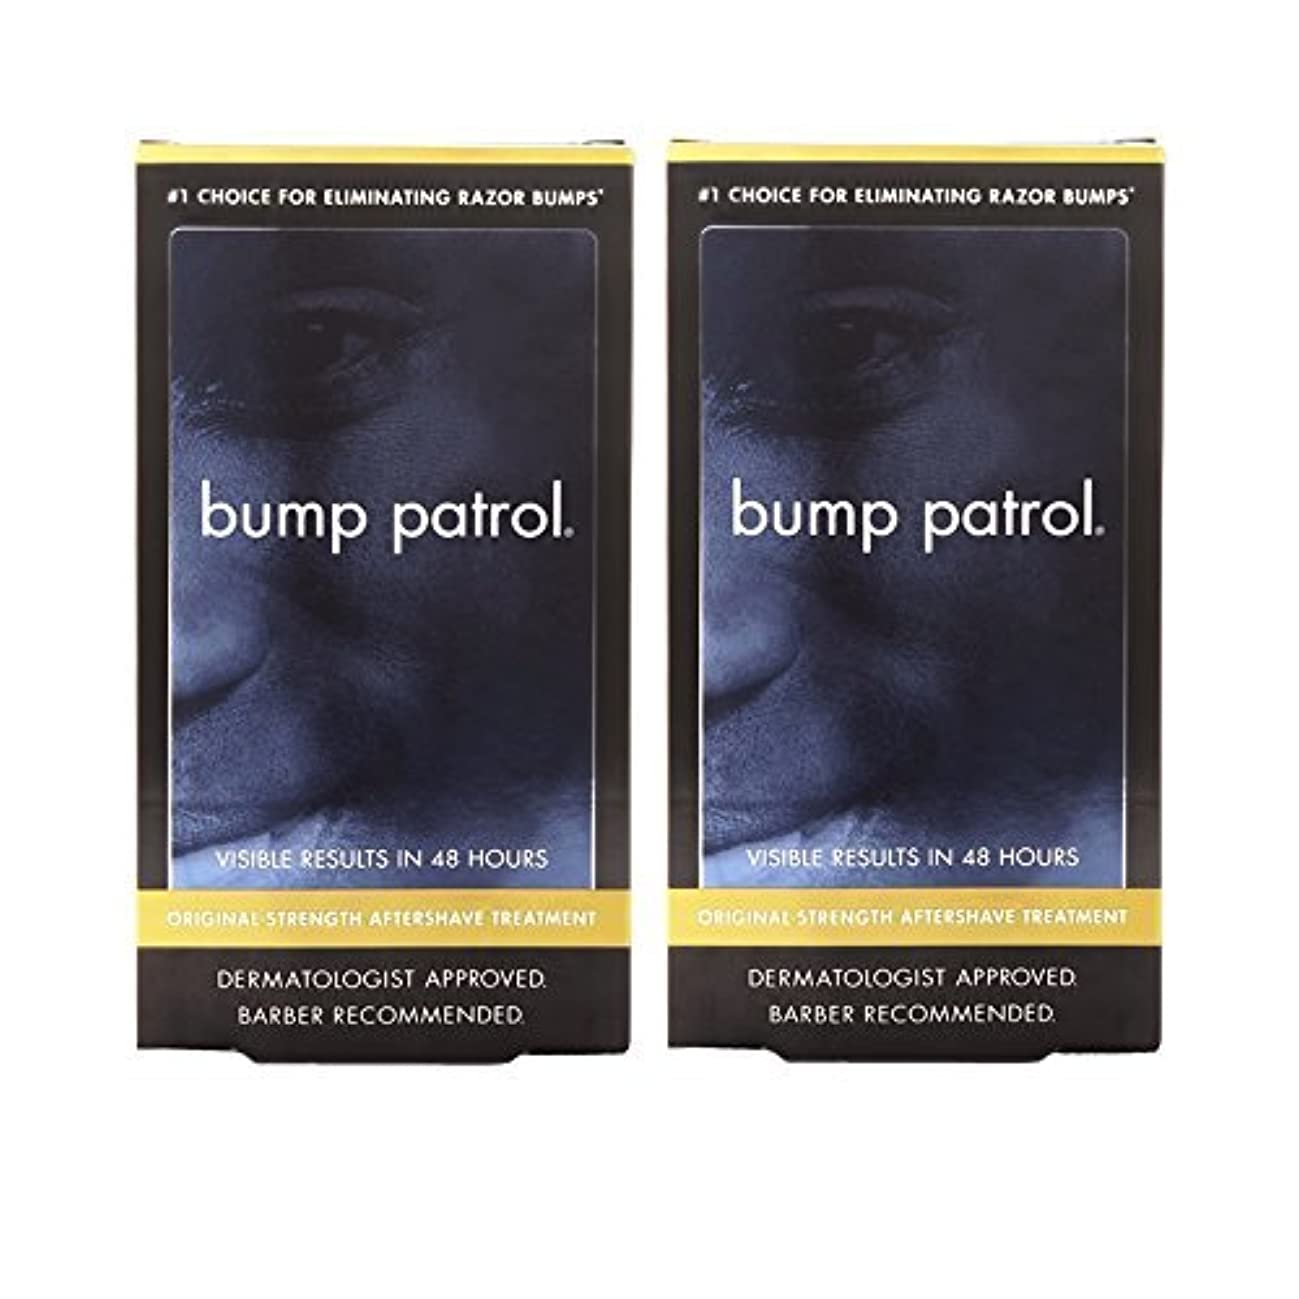 アルプス最大限ピッチャーBump Patrol Dermatologist Approved Original Strength Aftershave Treatment (2 oz) 2 Pack [並行輸入品]